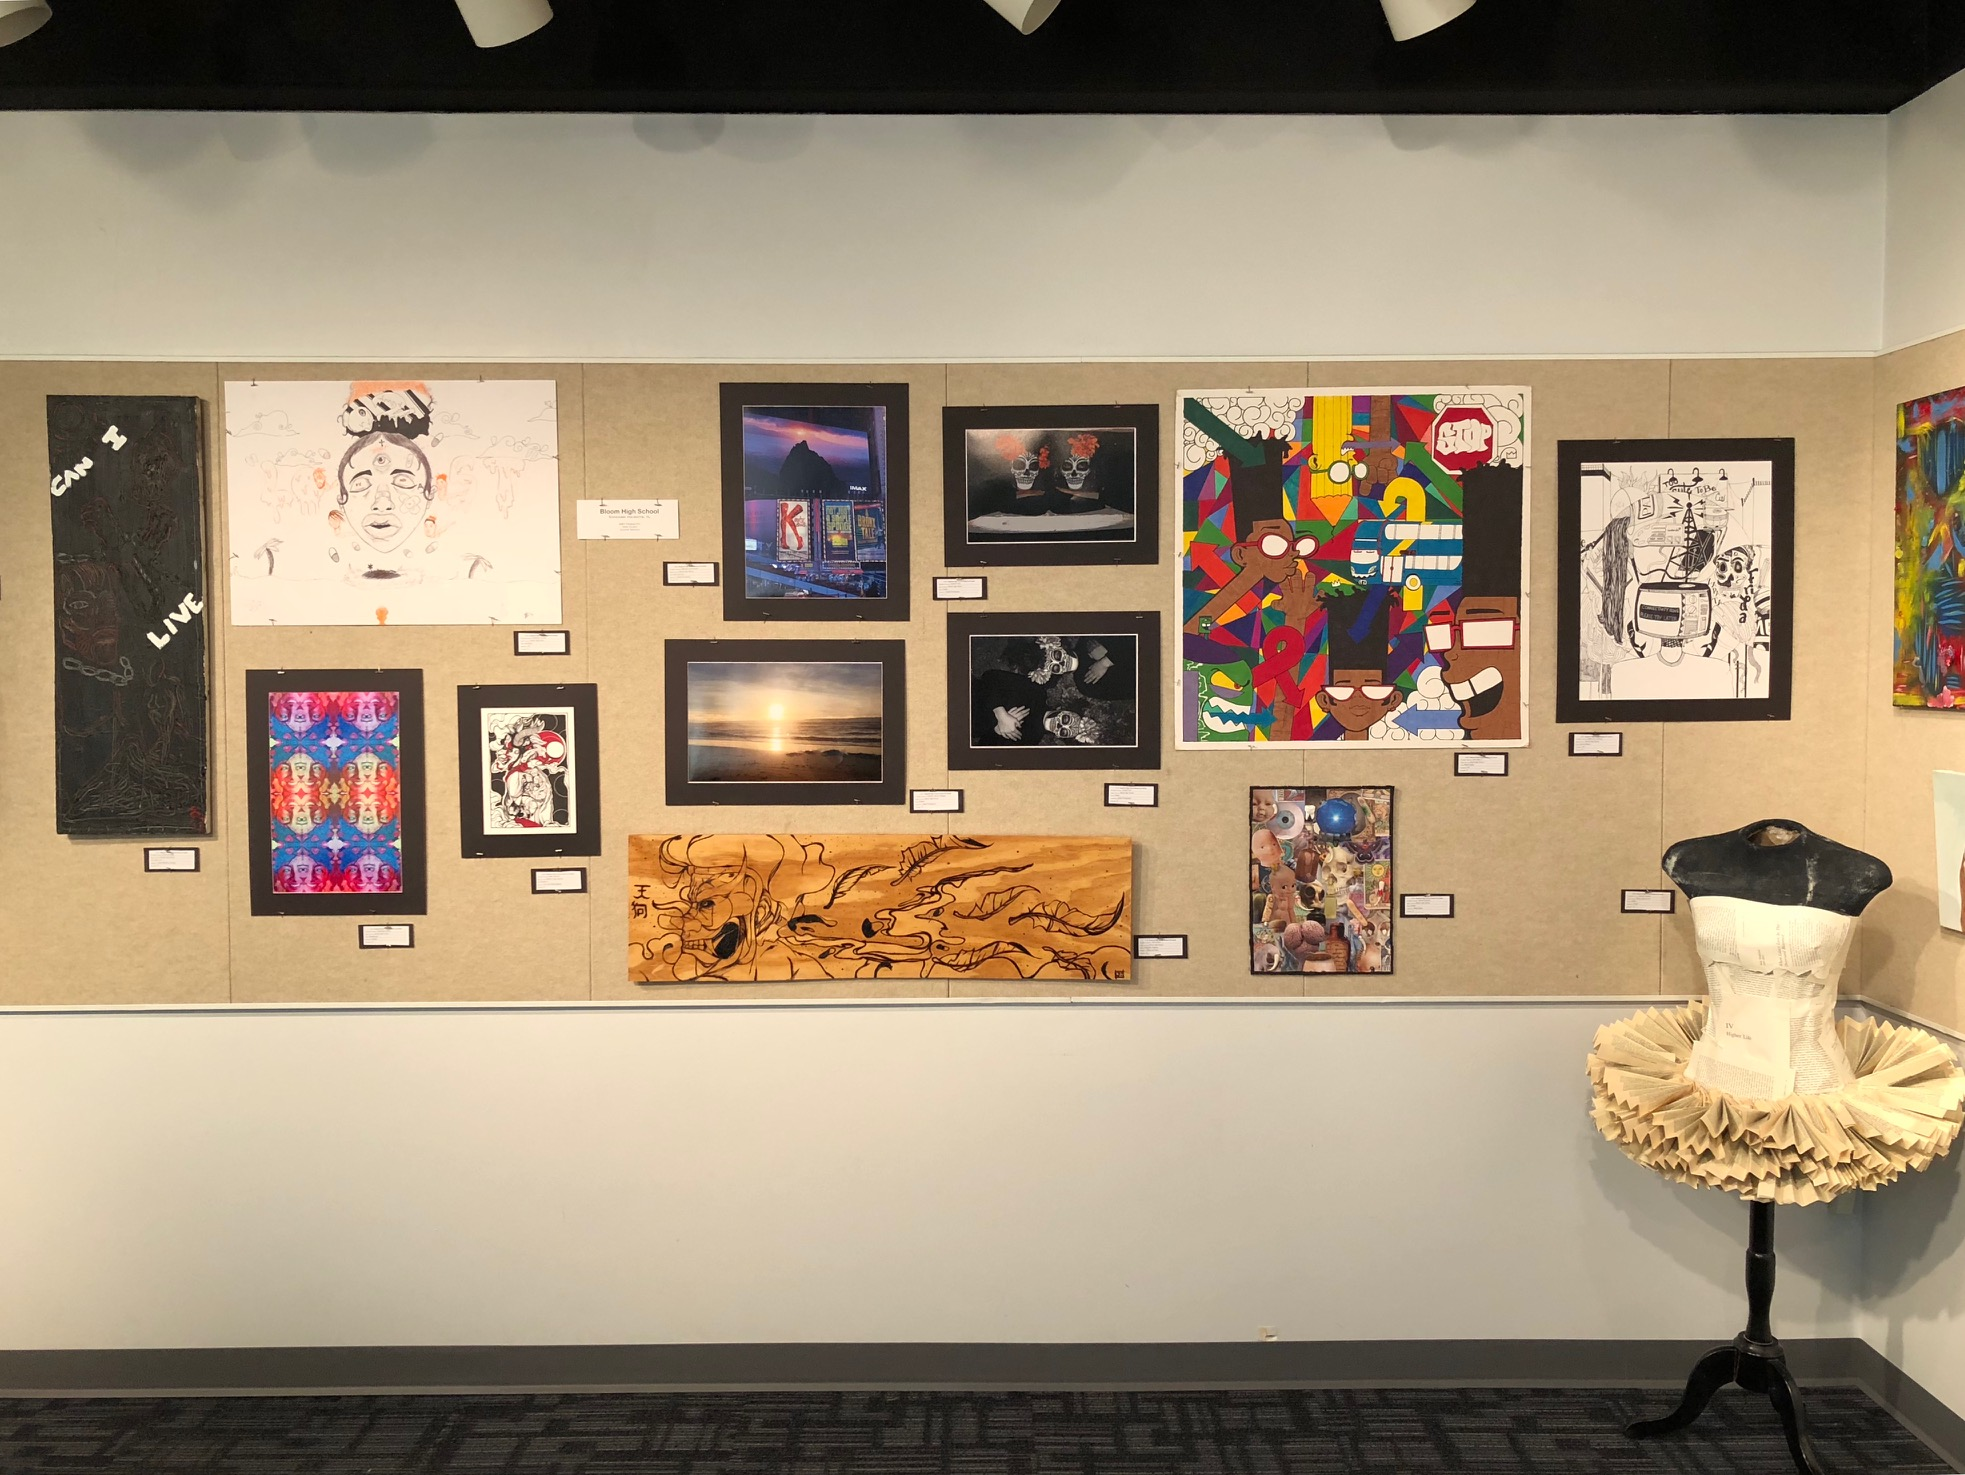 Bloom Art Students' Work on Display!